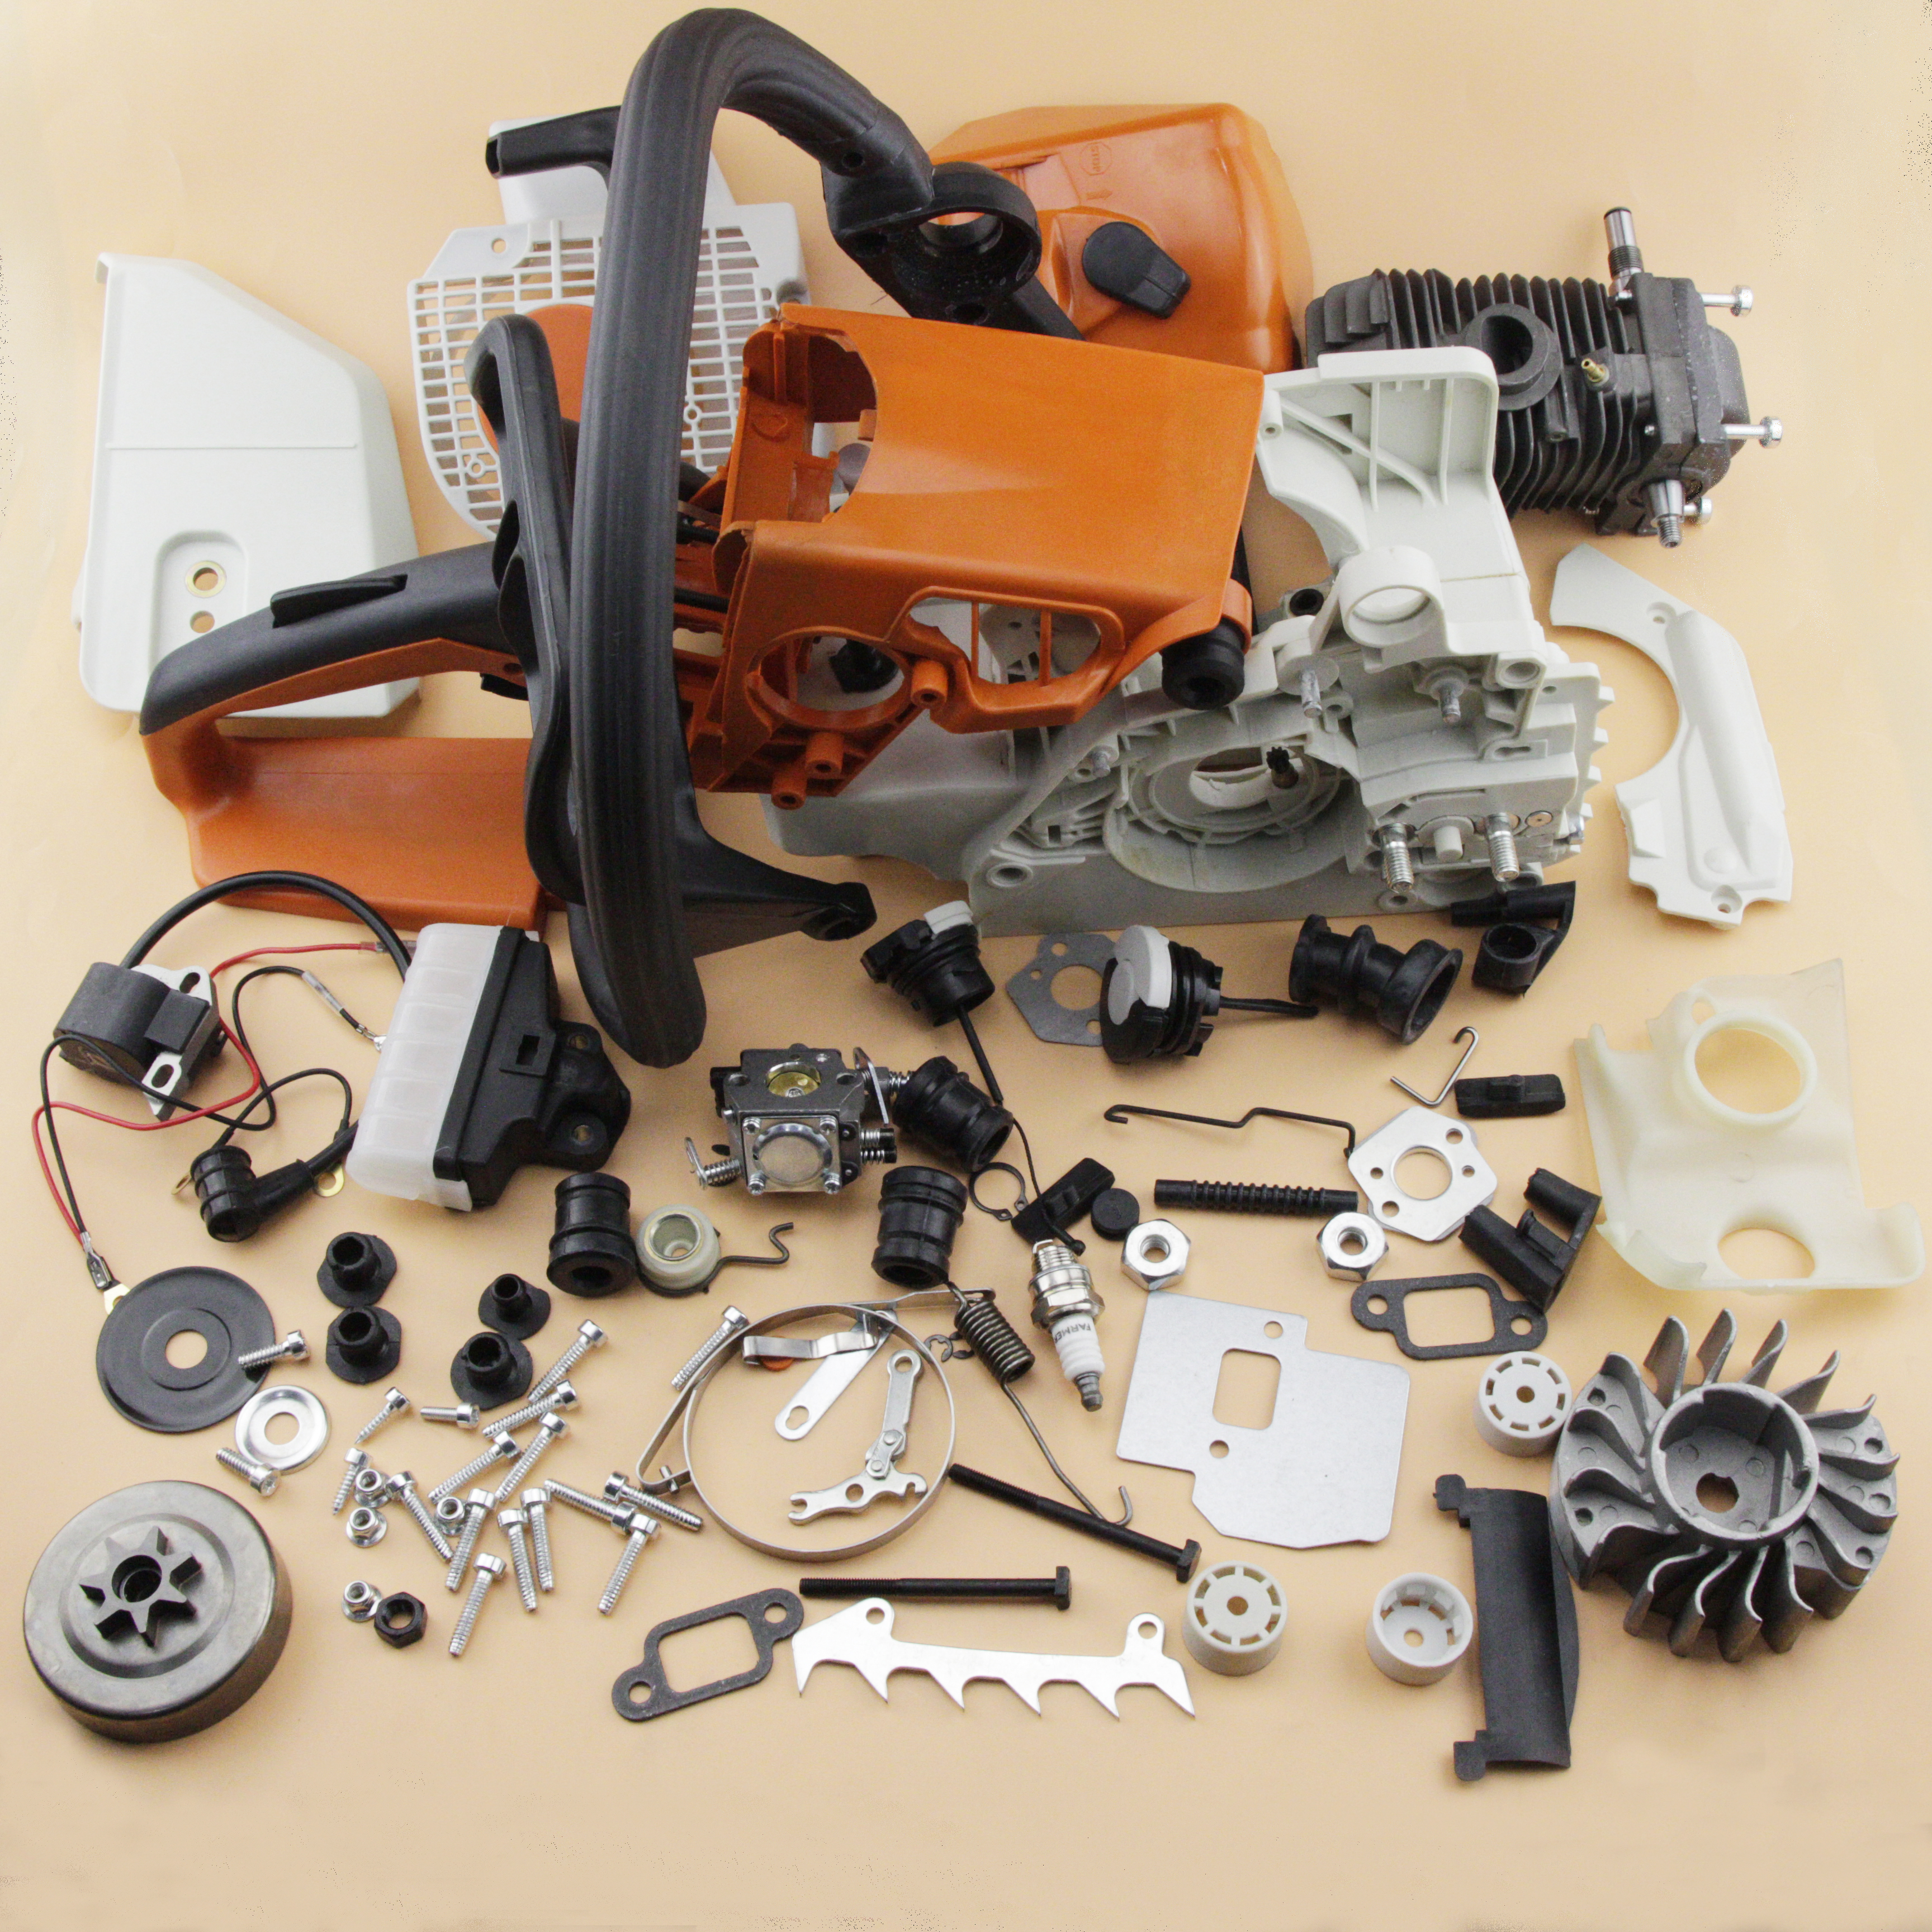 Complete Repair Parts For Stihl Ms250 025 Chainsaw Engine